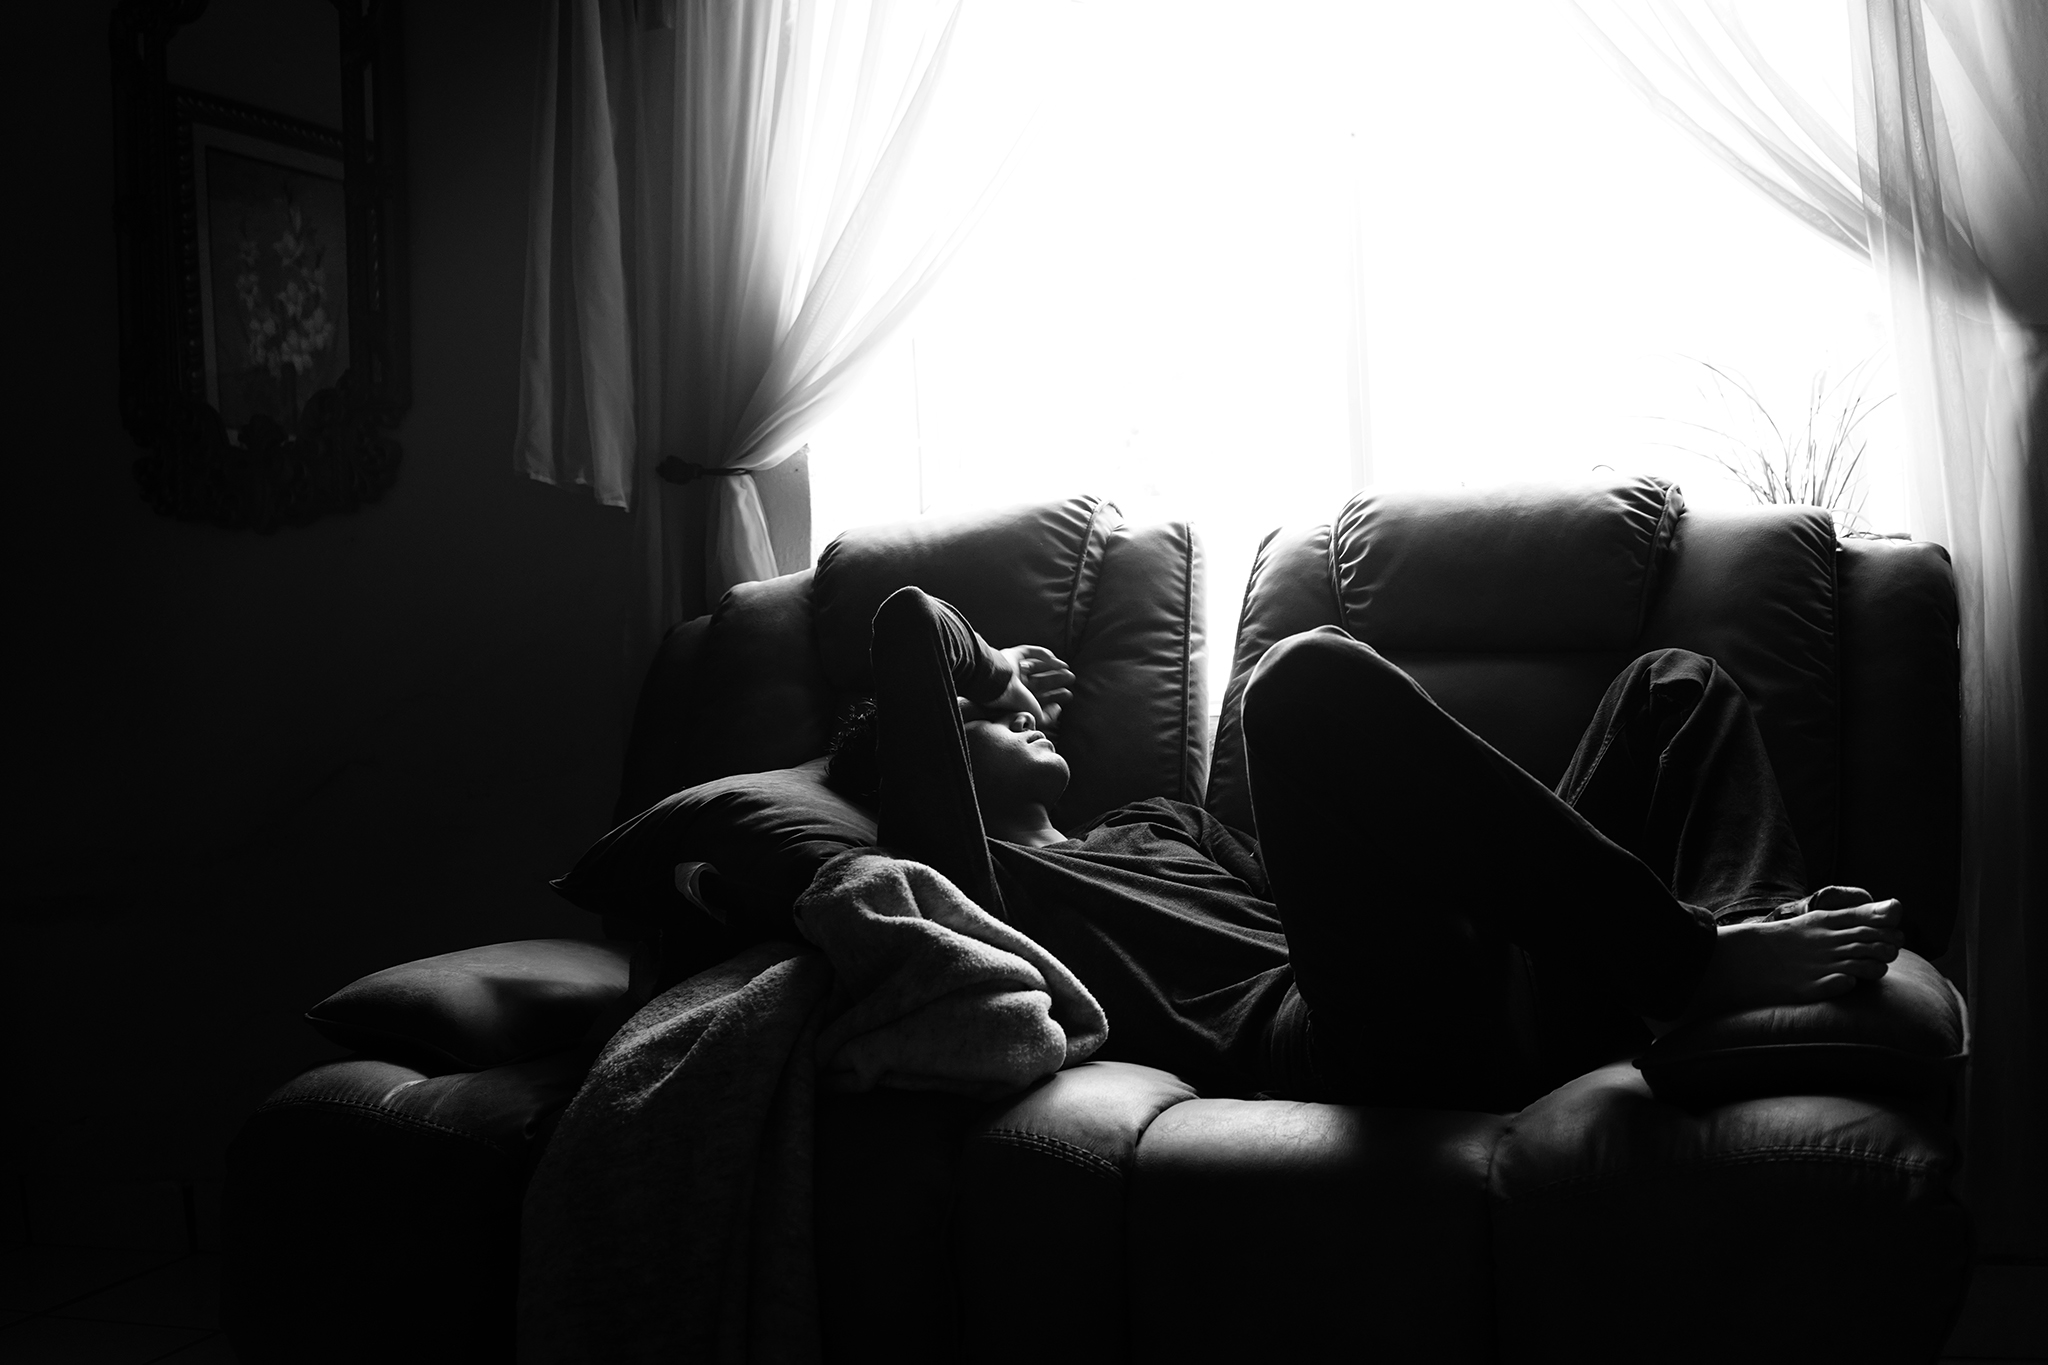 Brandon Resendez takes time to rest at his grandparent's home in a rancho called Cerro de Santiago in Durango, Mexico. Rancho life is for the most part quiet, often sleeping and napping in the day because it's so hot outside.